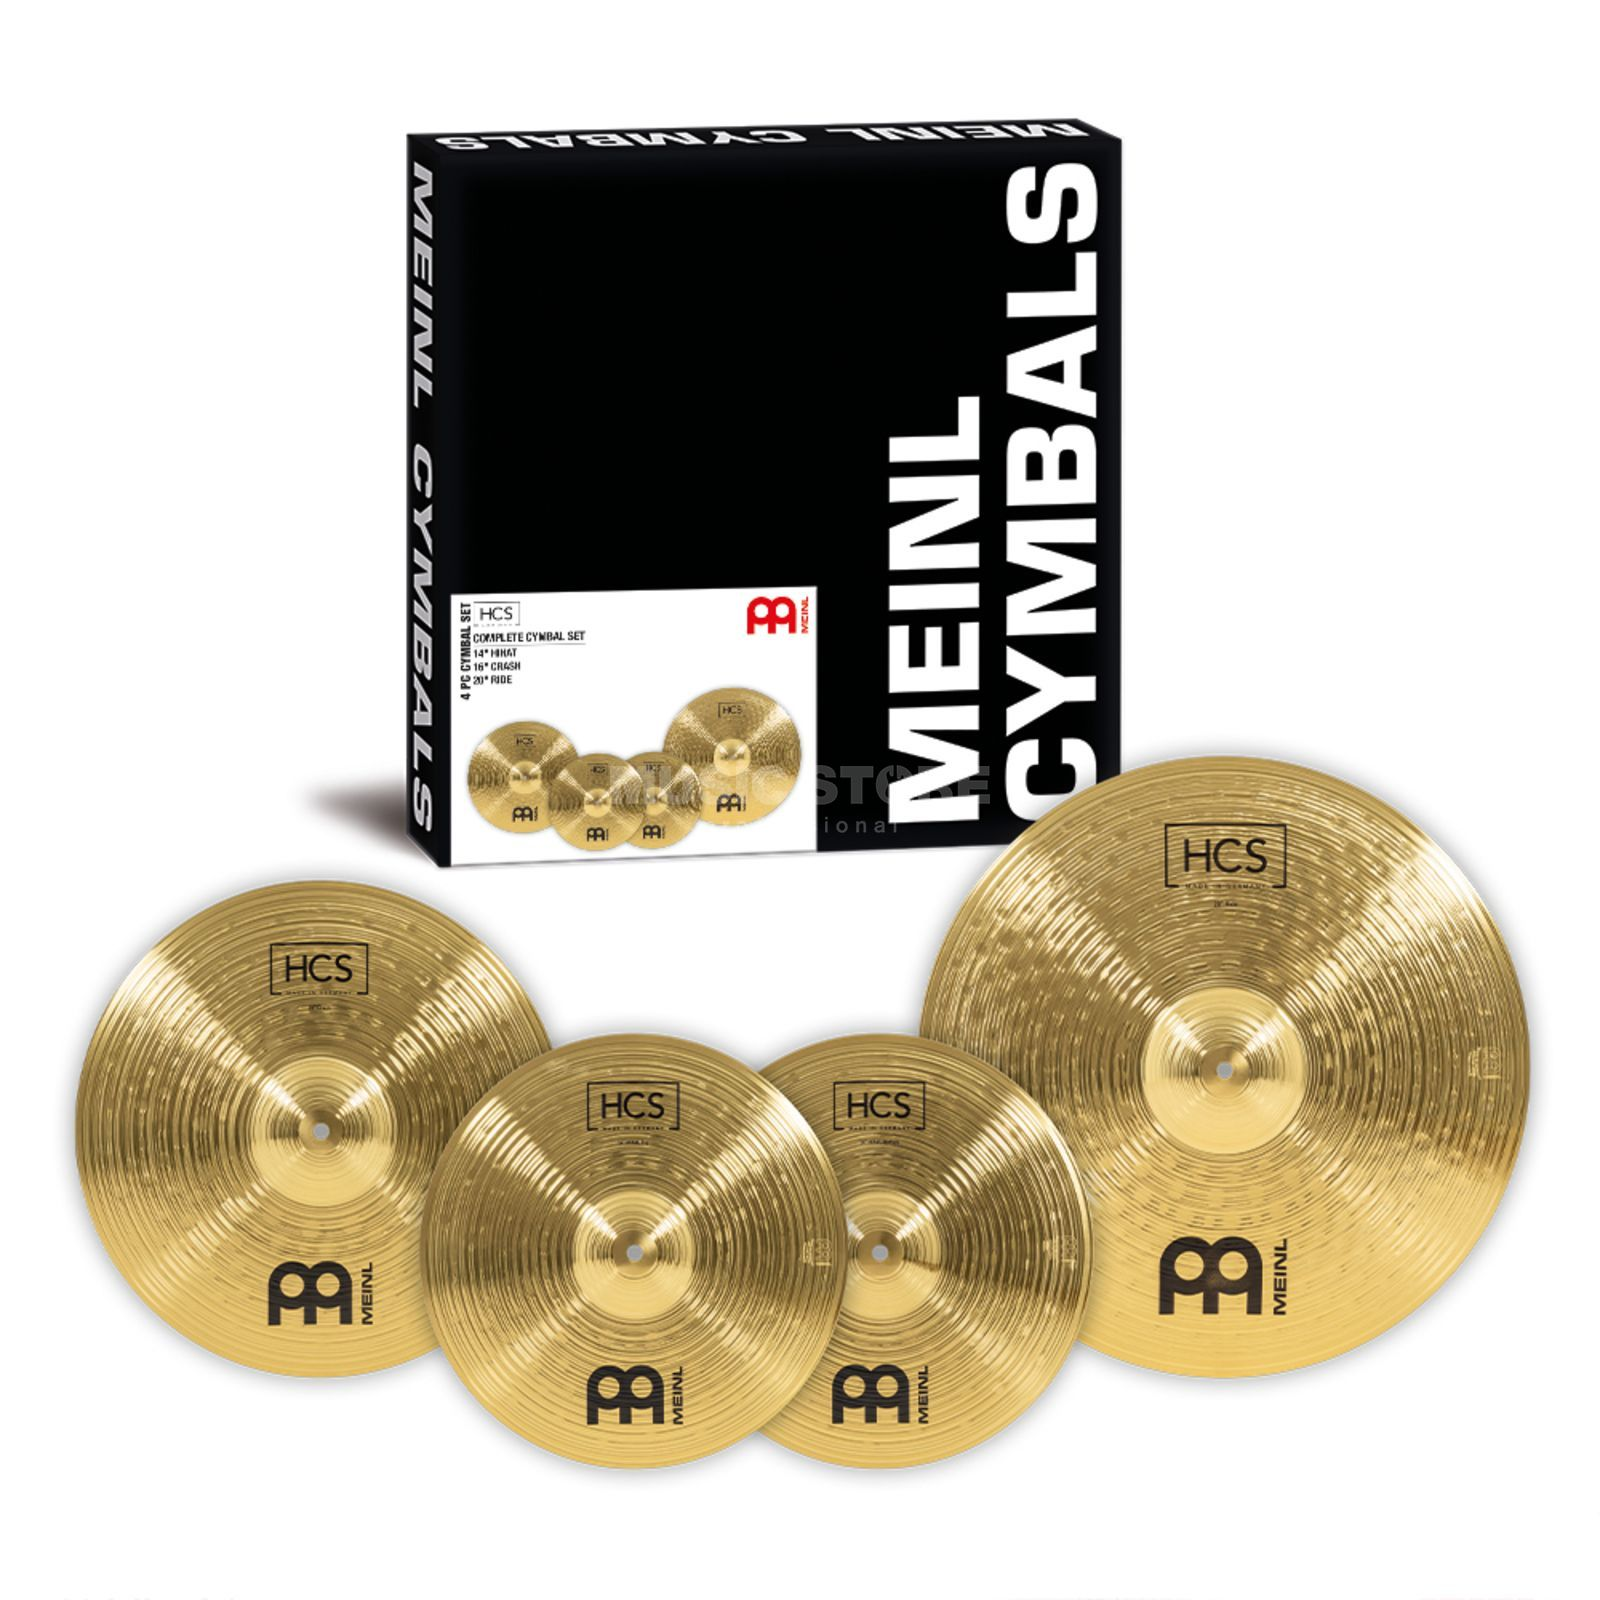 "Meinl HCS Cymbal Set 20"" Ride,16"" Crash,14"" HiHat Produktbild"